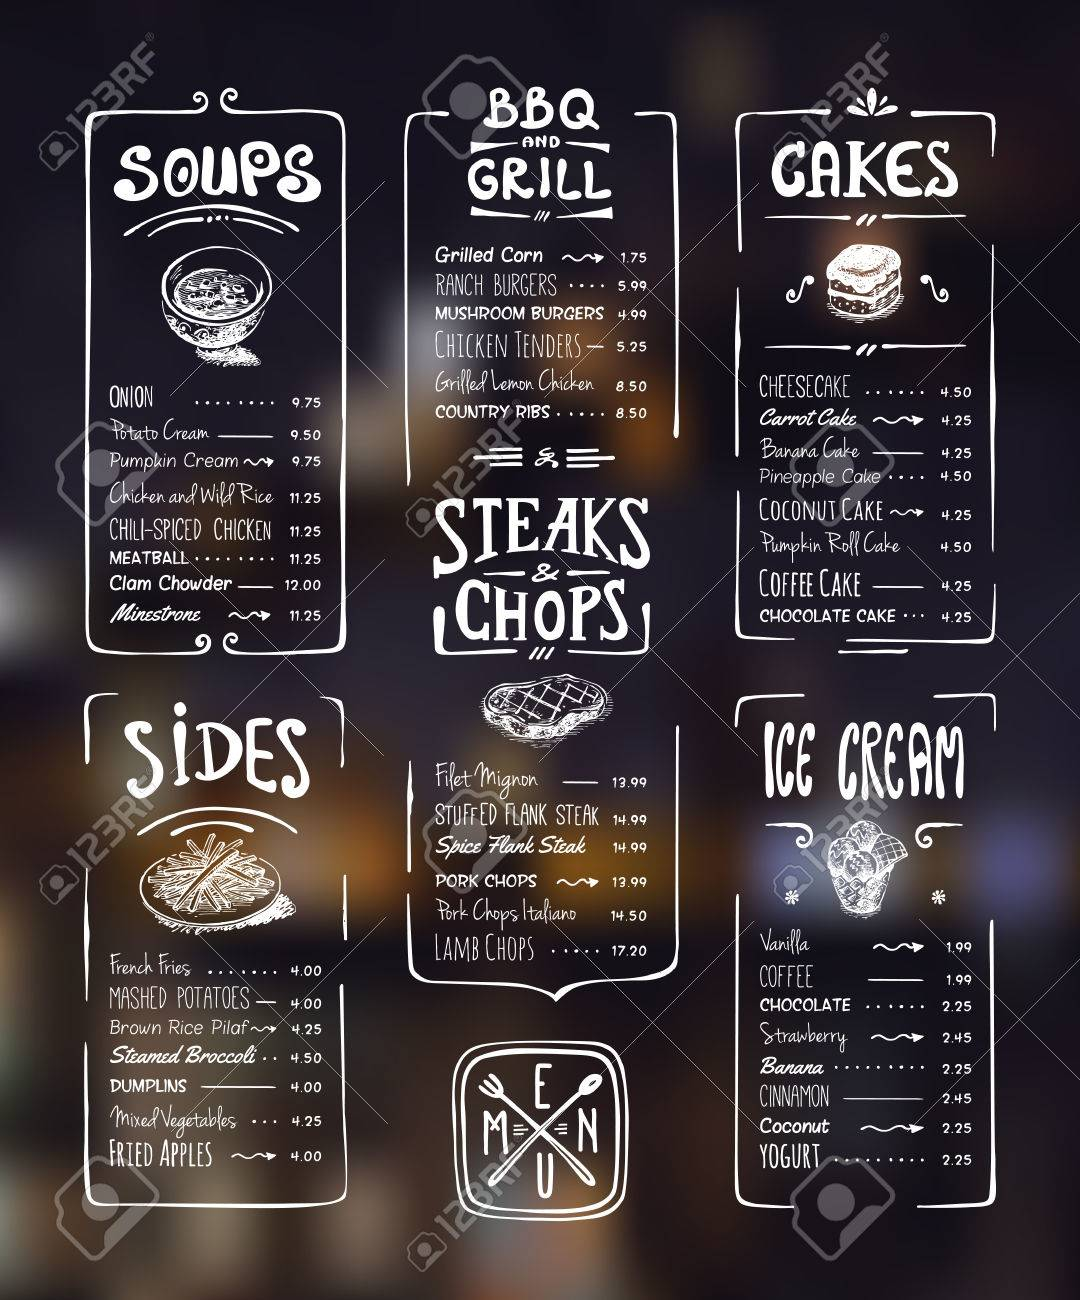 1080x1300 Menu Template. White Drawing On Dark Background. Soups, Sides